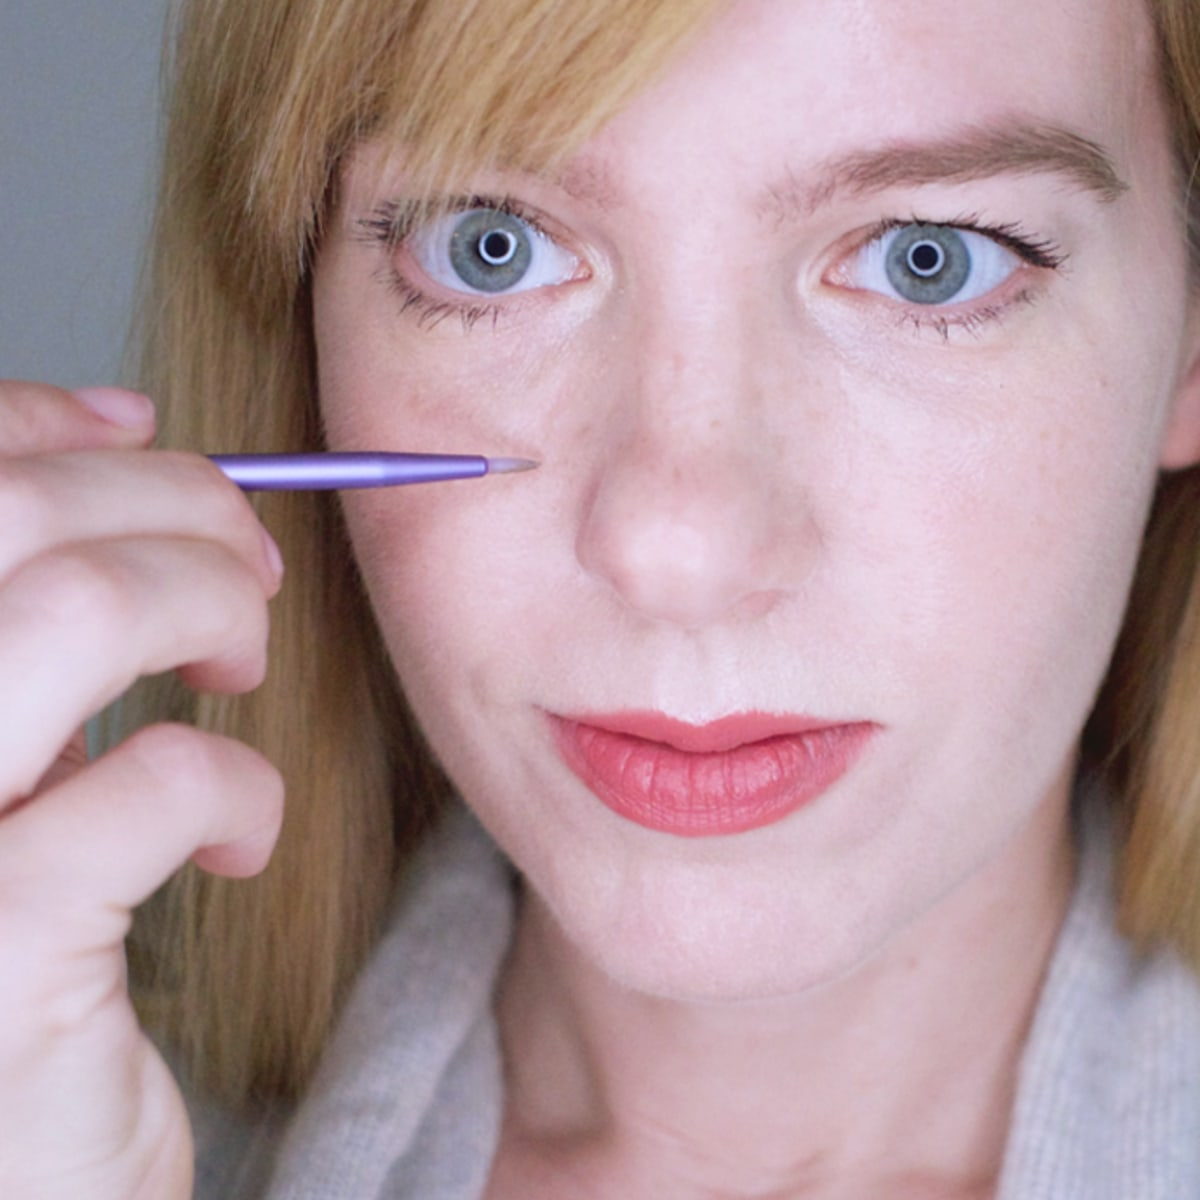 How to Look Younger With Makeup - The Skincare Edit